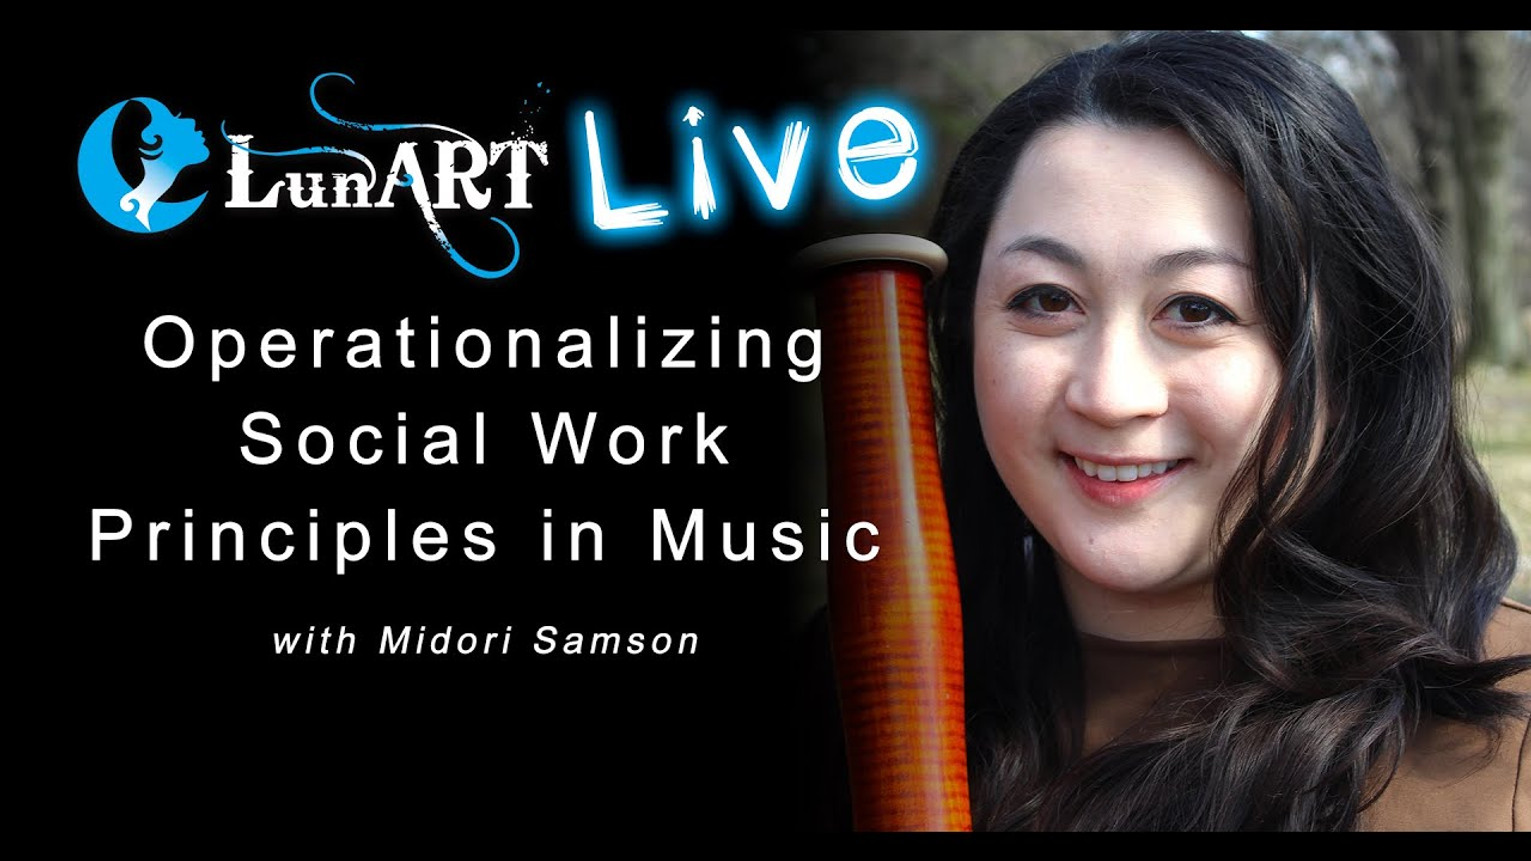 Operationalizing Social Work Principles in Music with Midori Samson